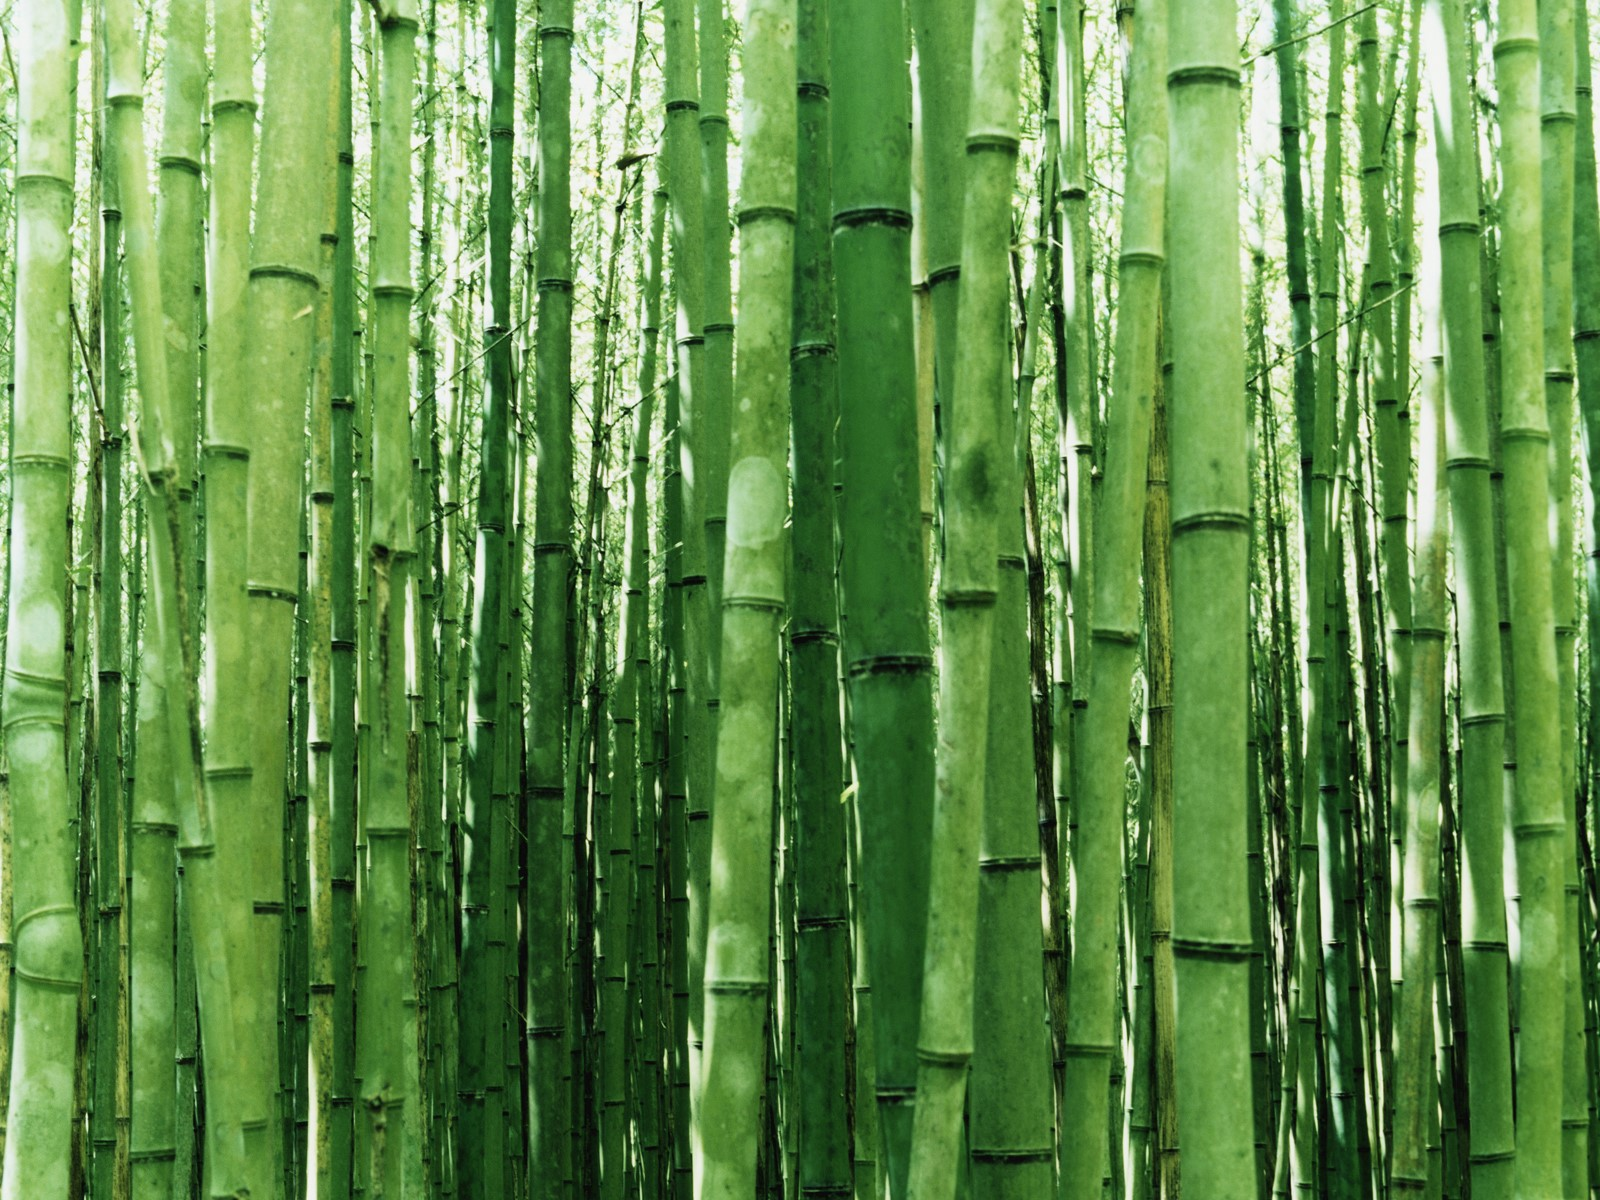 bamboo wallpaper by doantrangnguyen - photo #16